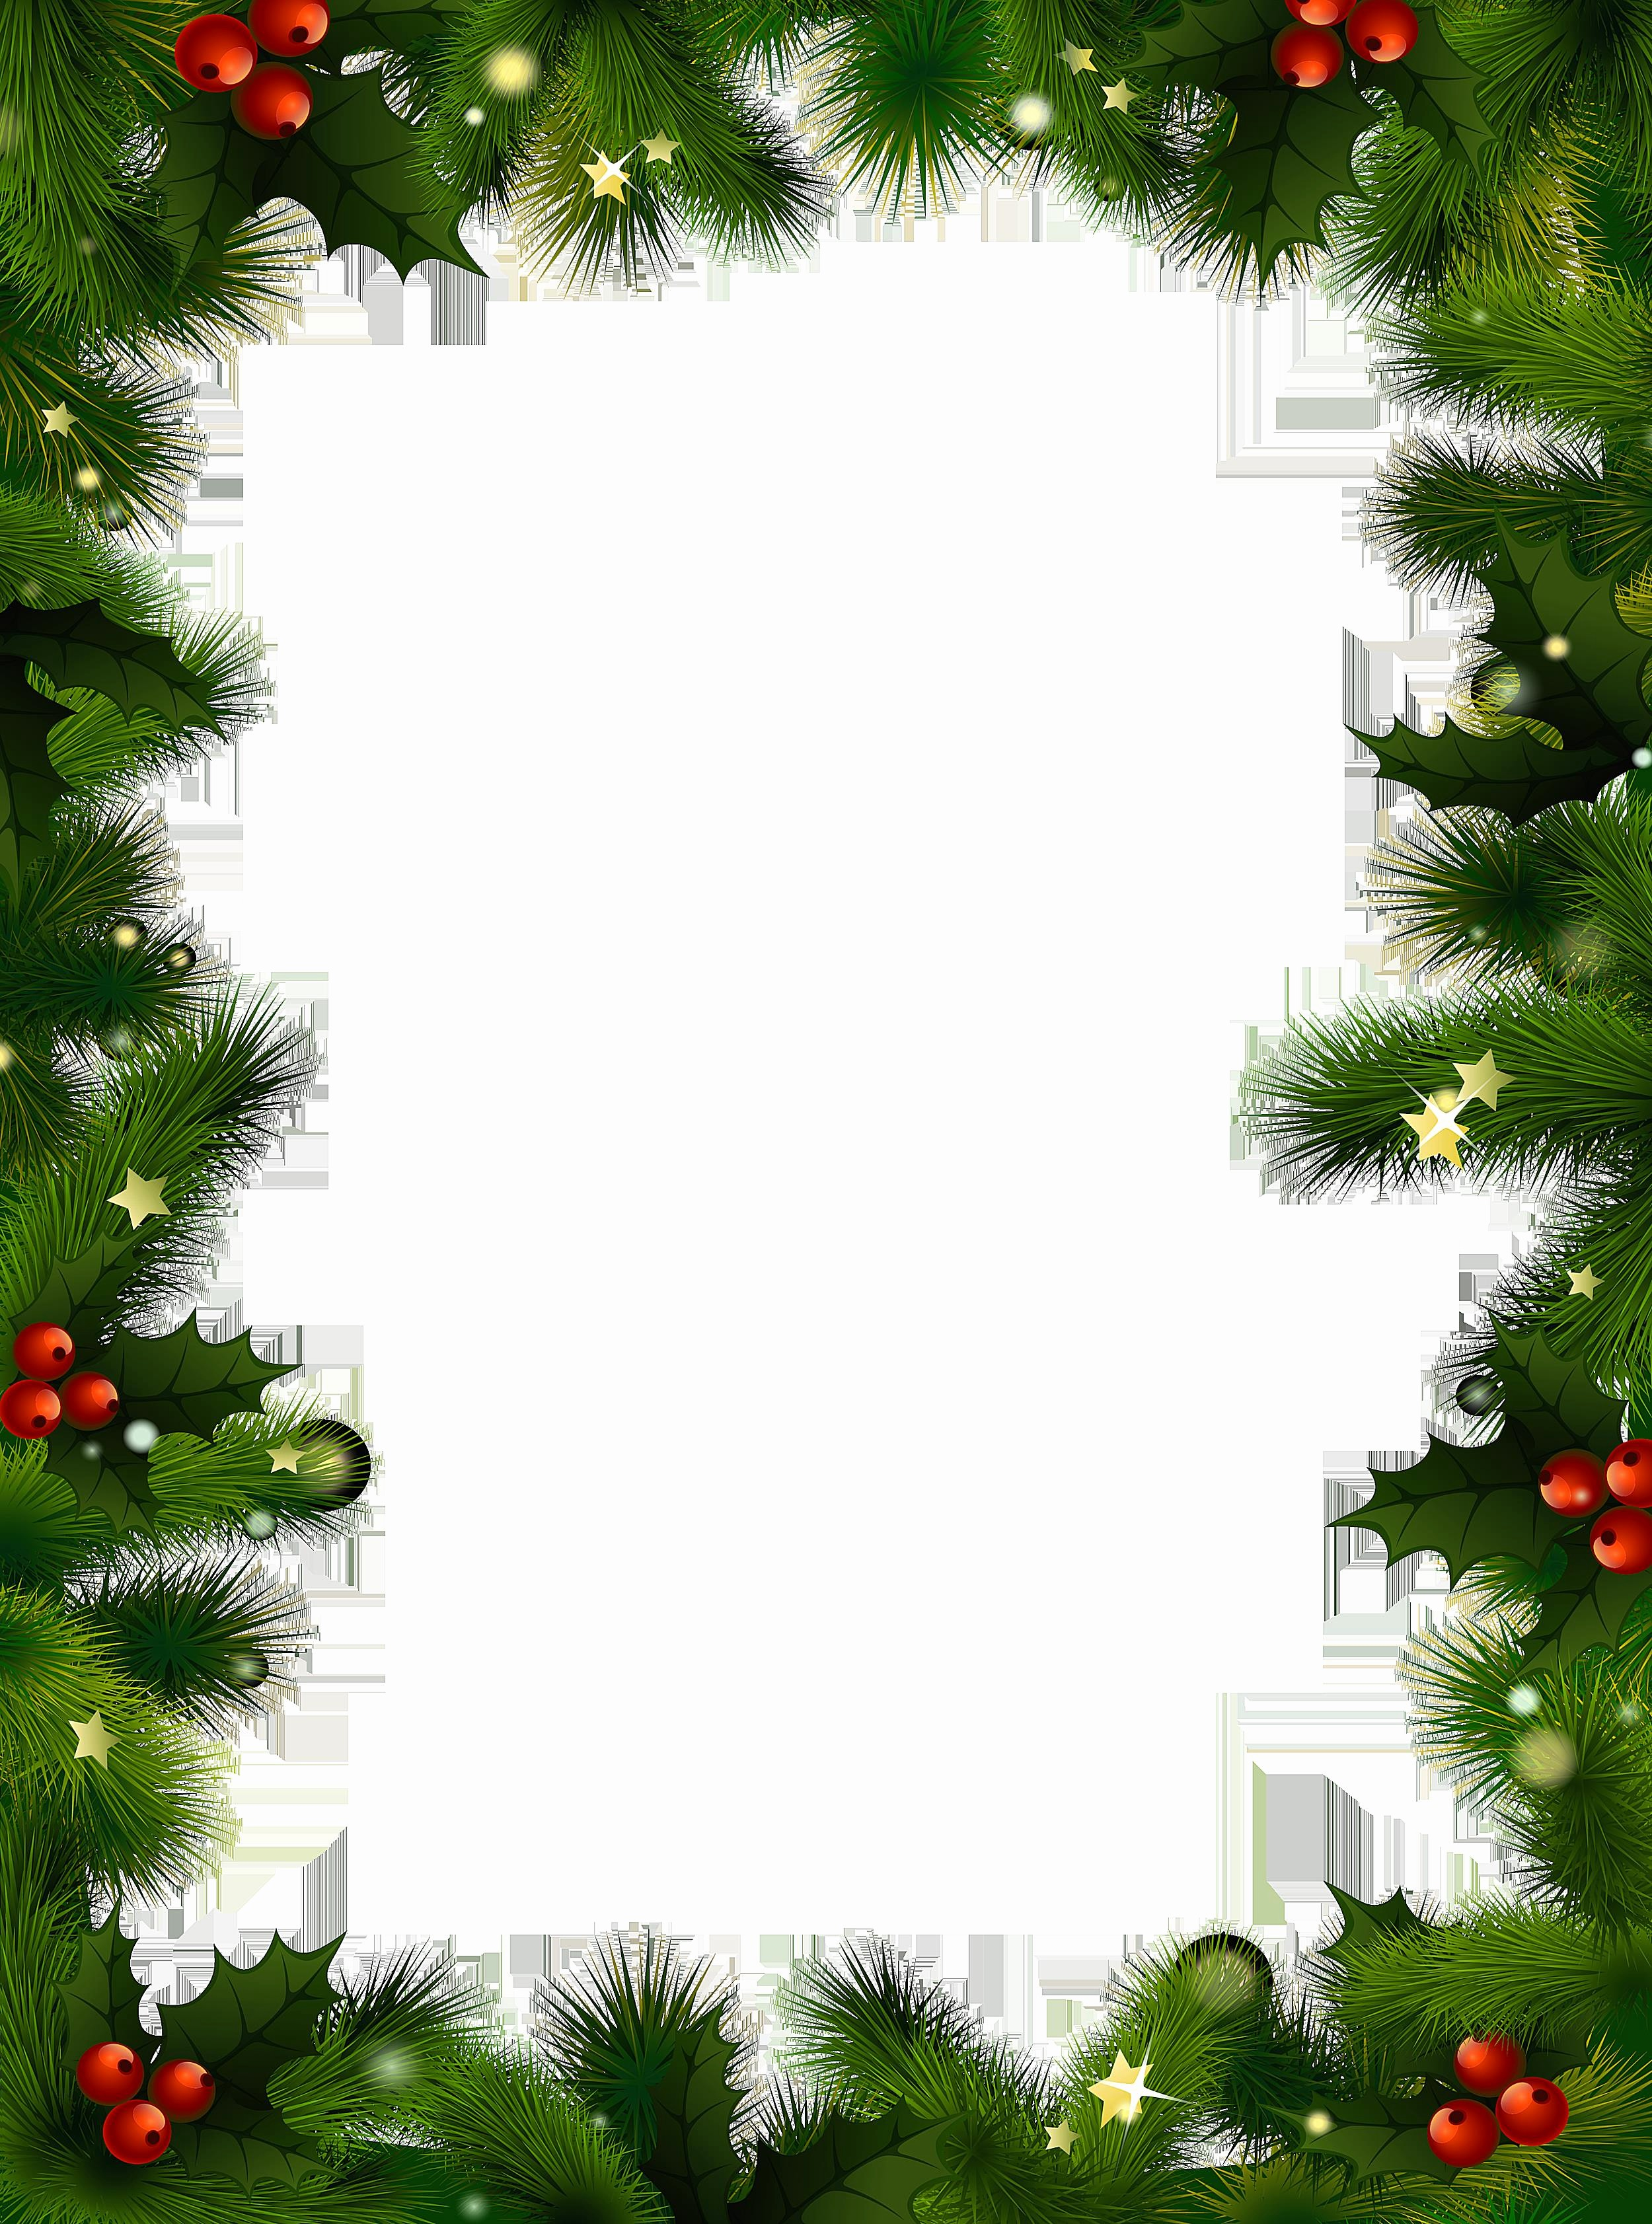 Free Microsoft Word Christmas Template Unique Microsoft Word Christmas Backgrounds Templates – Halloween